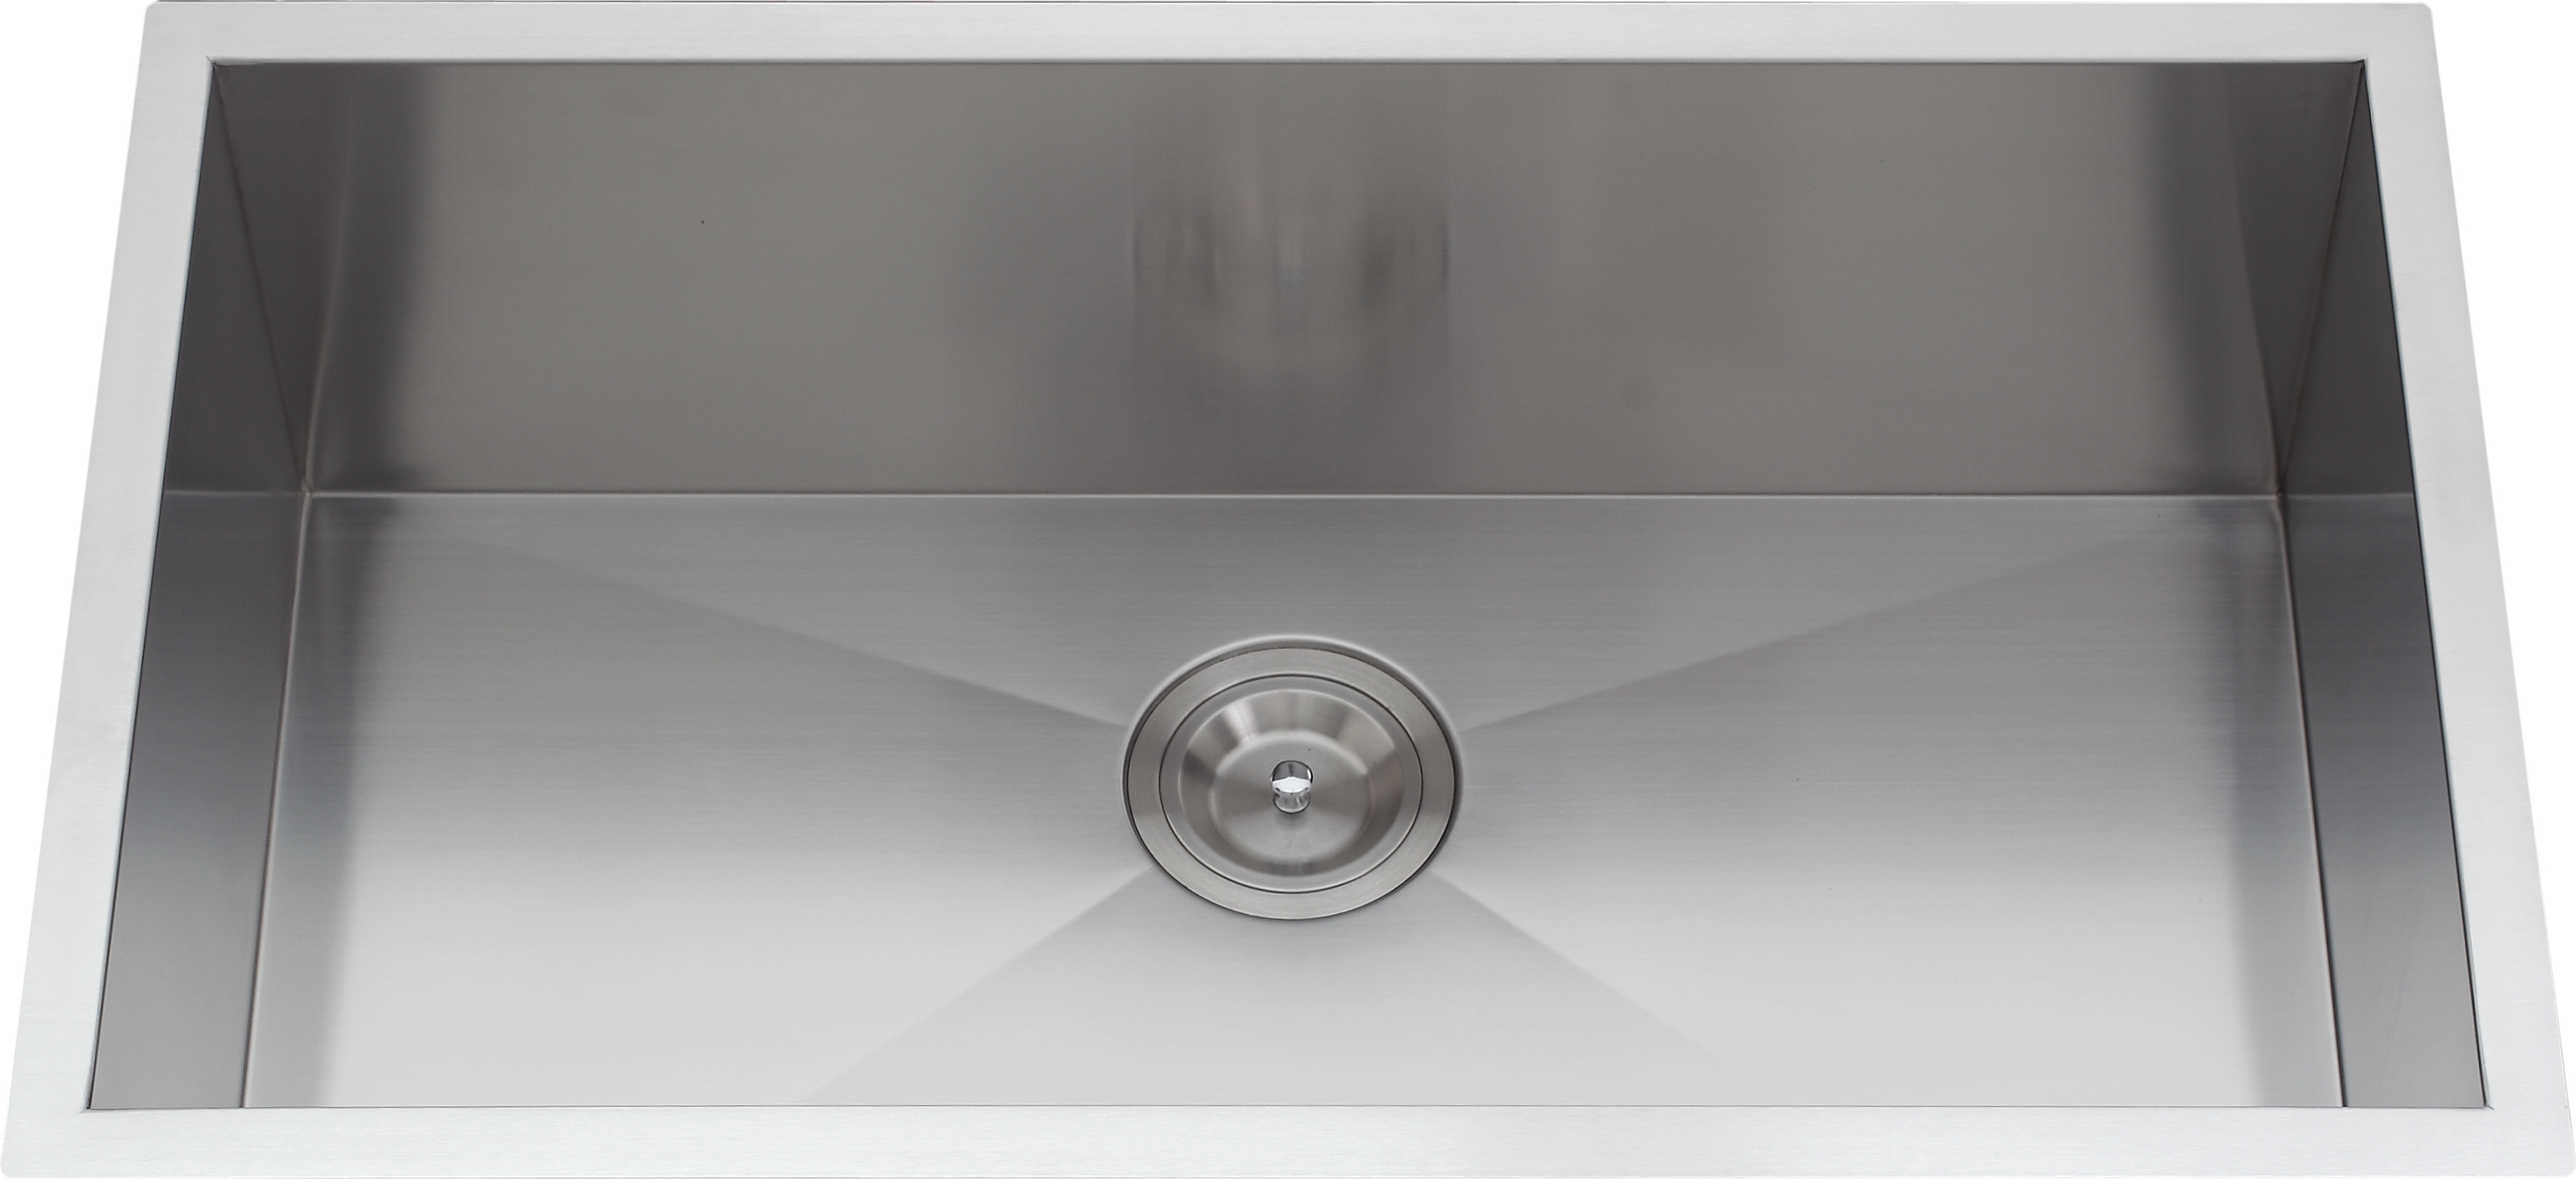 SINKS1118 Brushed Satin Finish